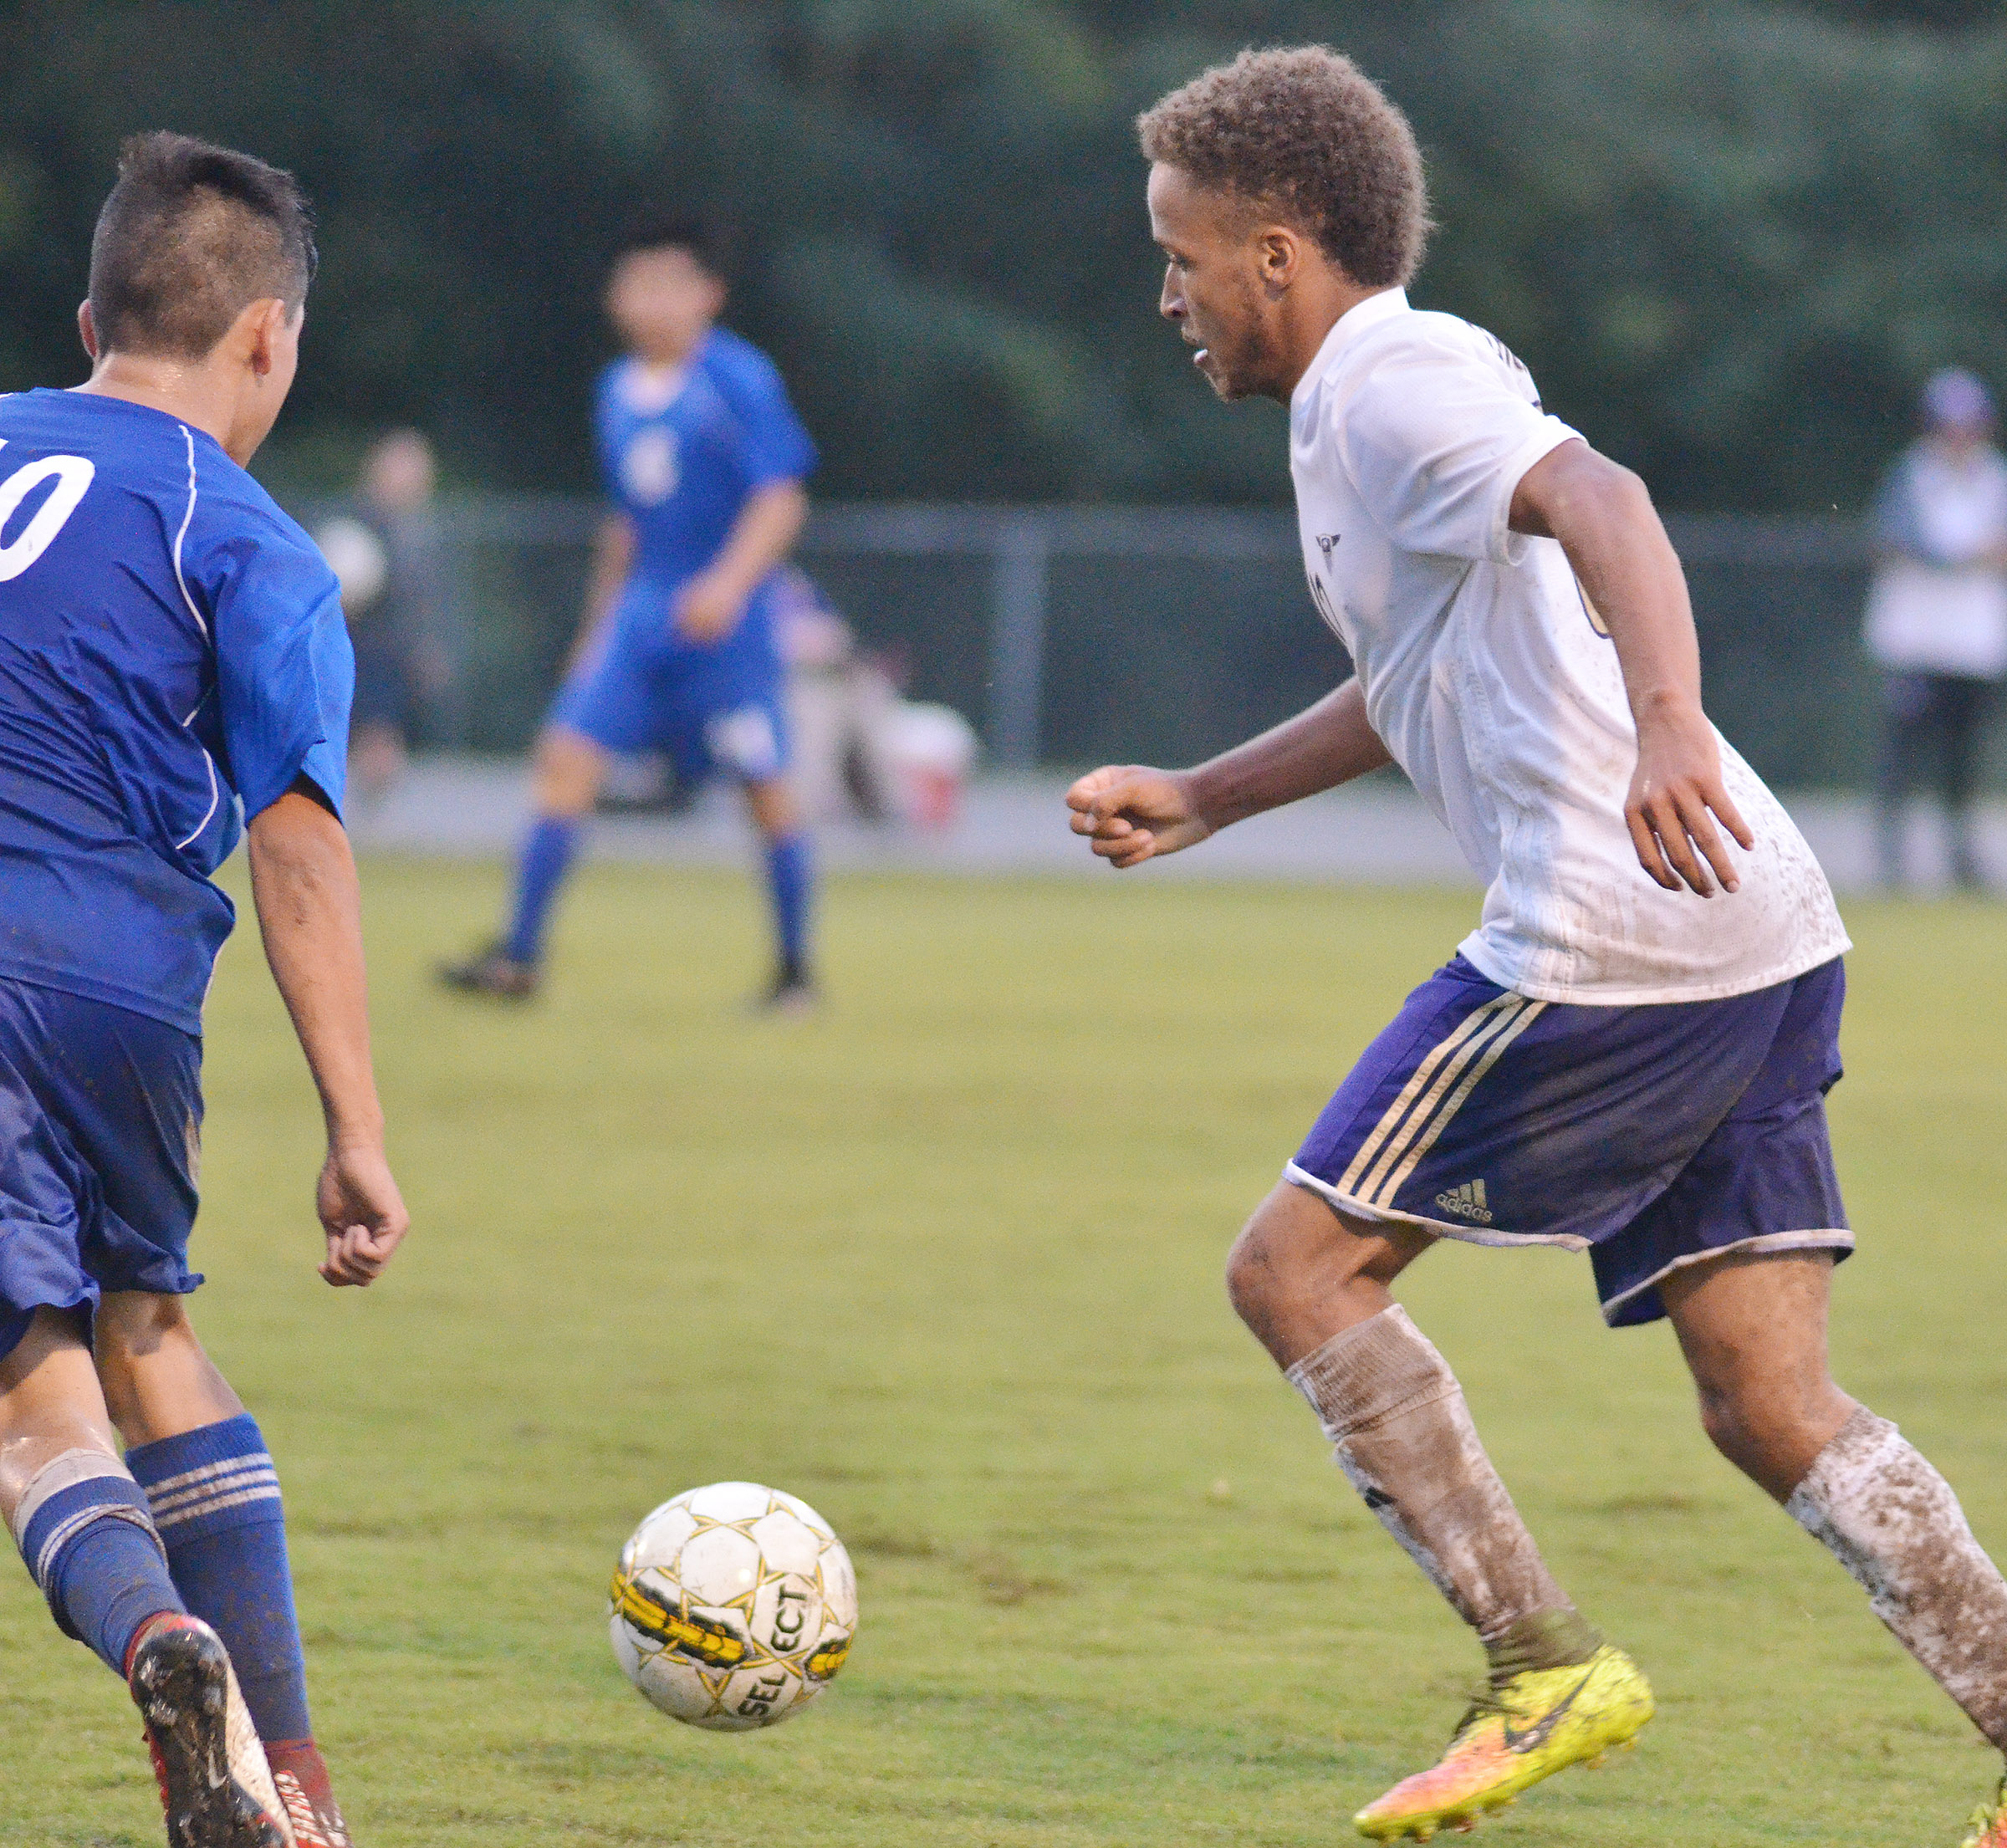 CHS senior Ethan Lay kicks the ball.